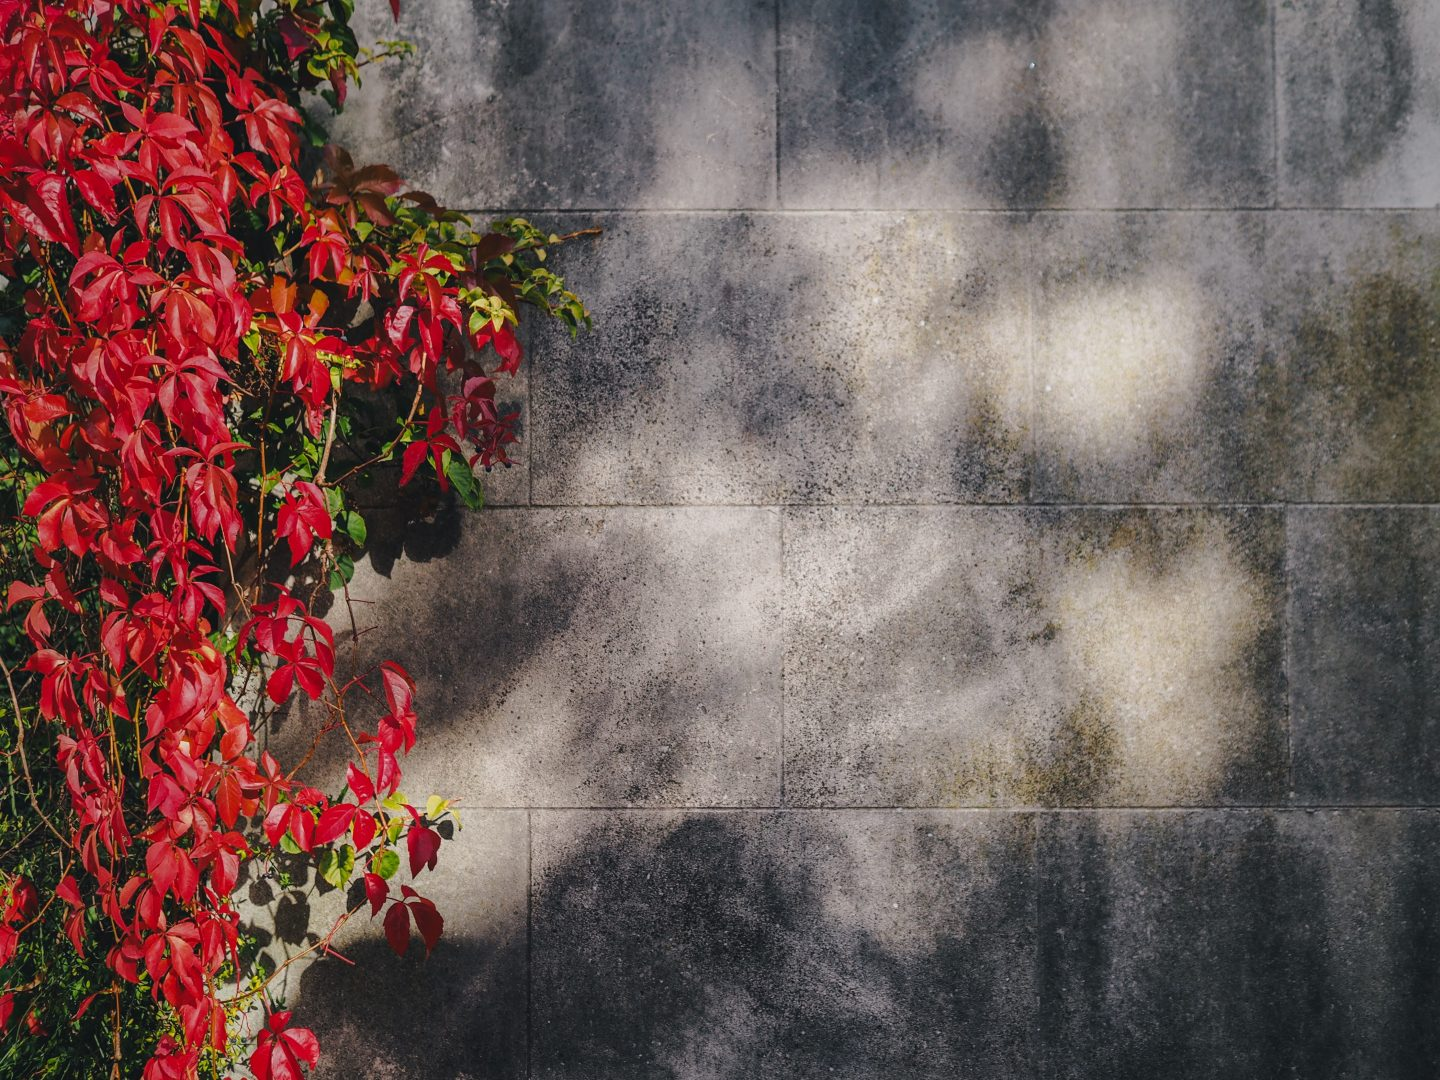 red petaled flowers near gray concrete wall